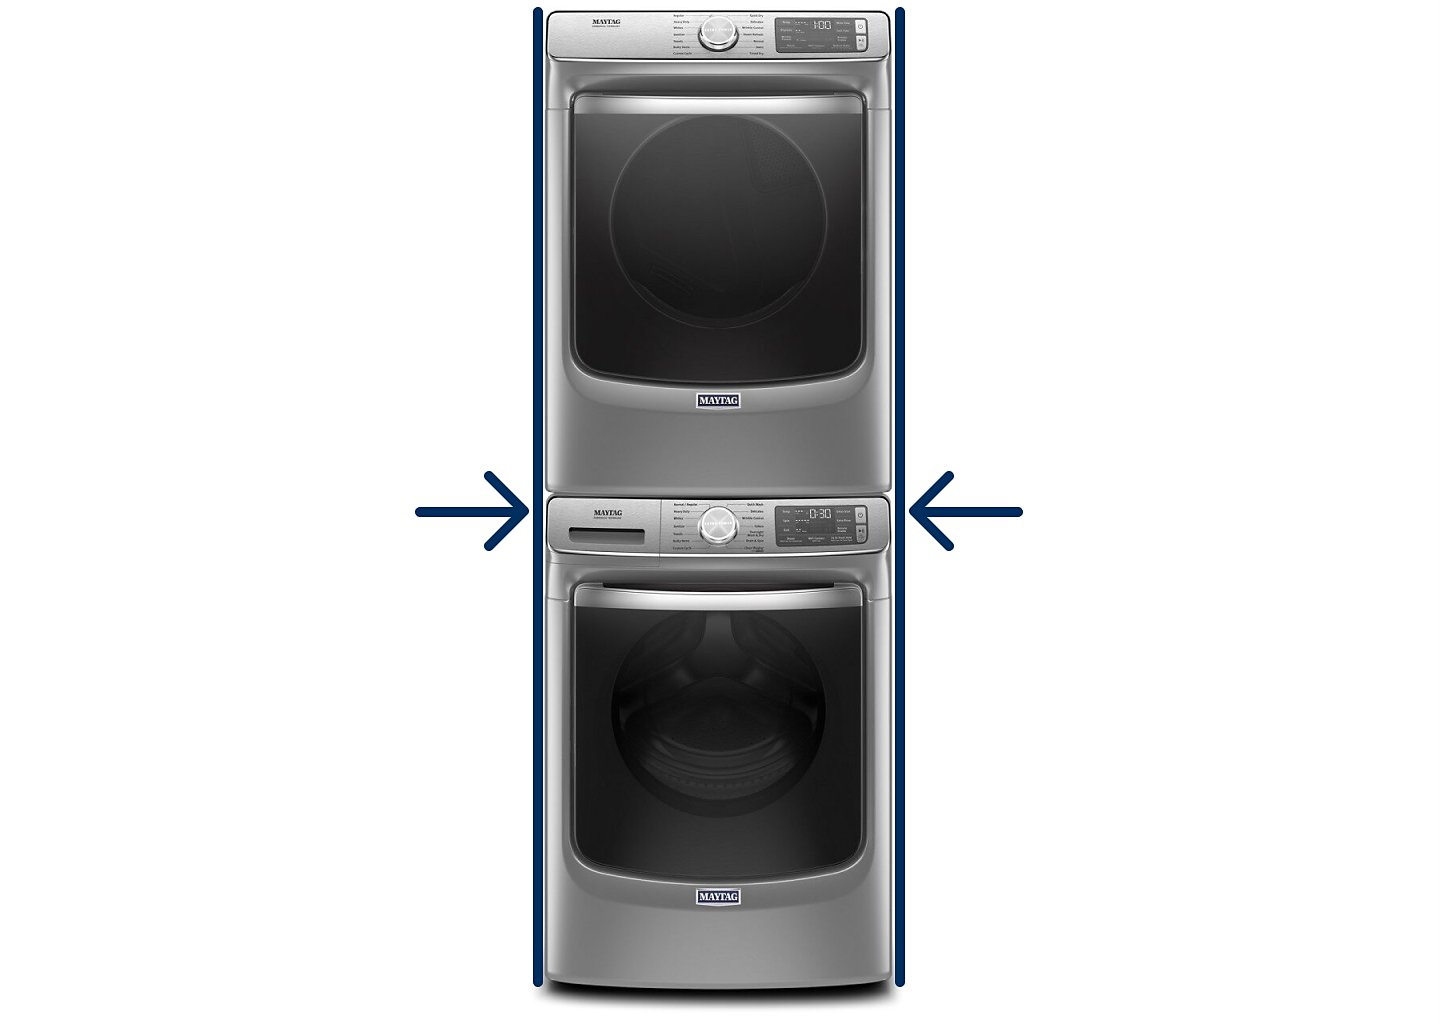 Stacked Maytag® washer and dryer with horizontal arrow icons